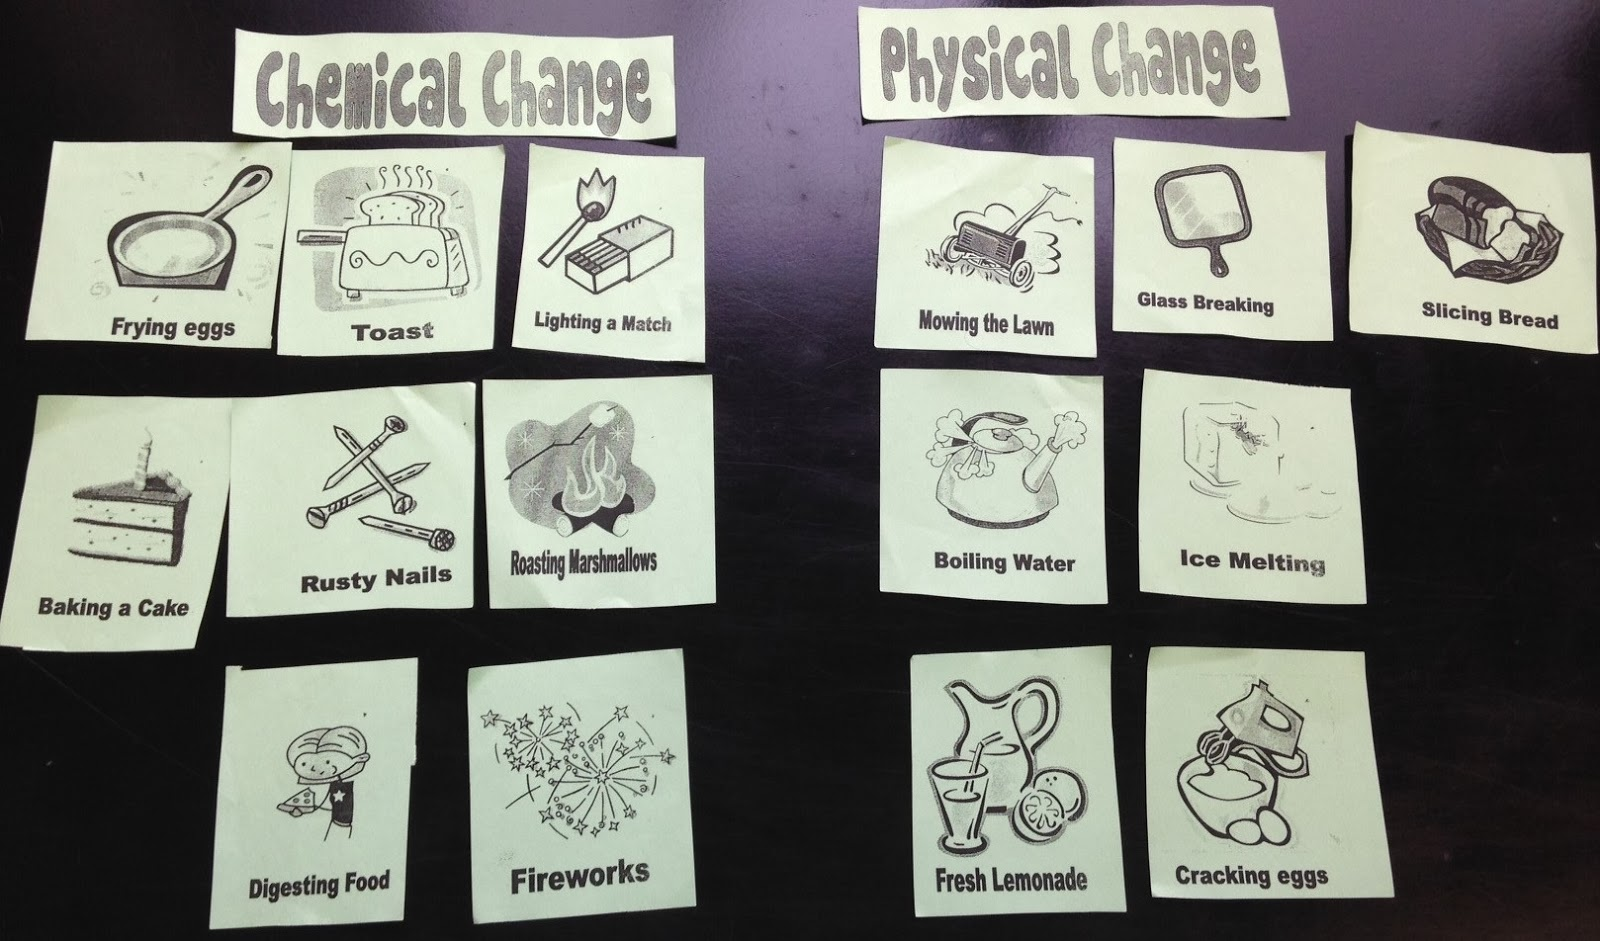 ... Changes Ex Les moreover physical vs chemical properties worksheet